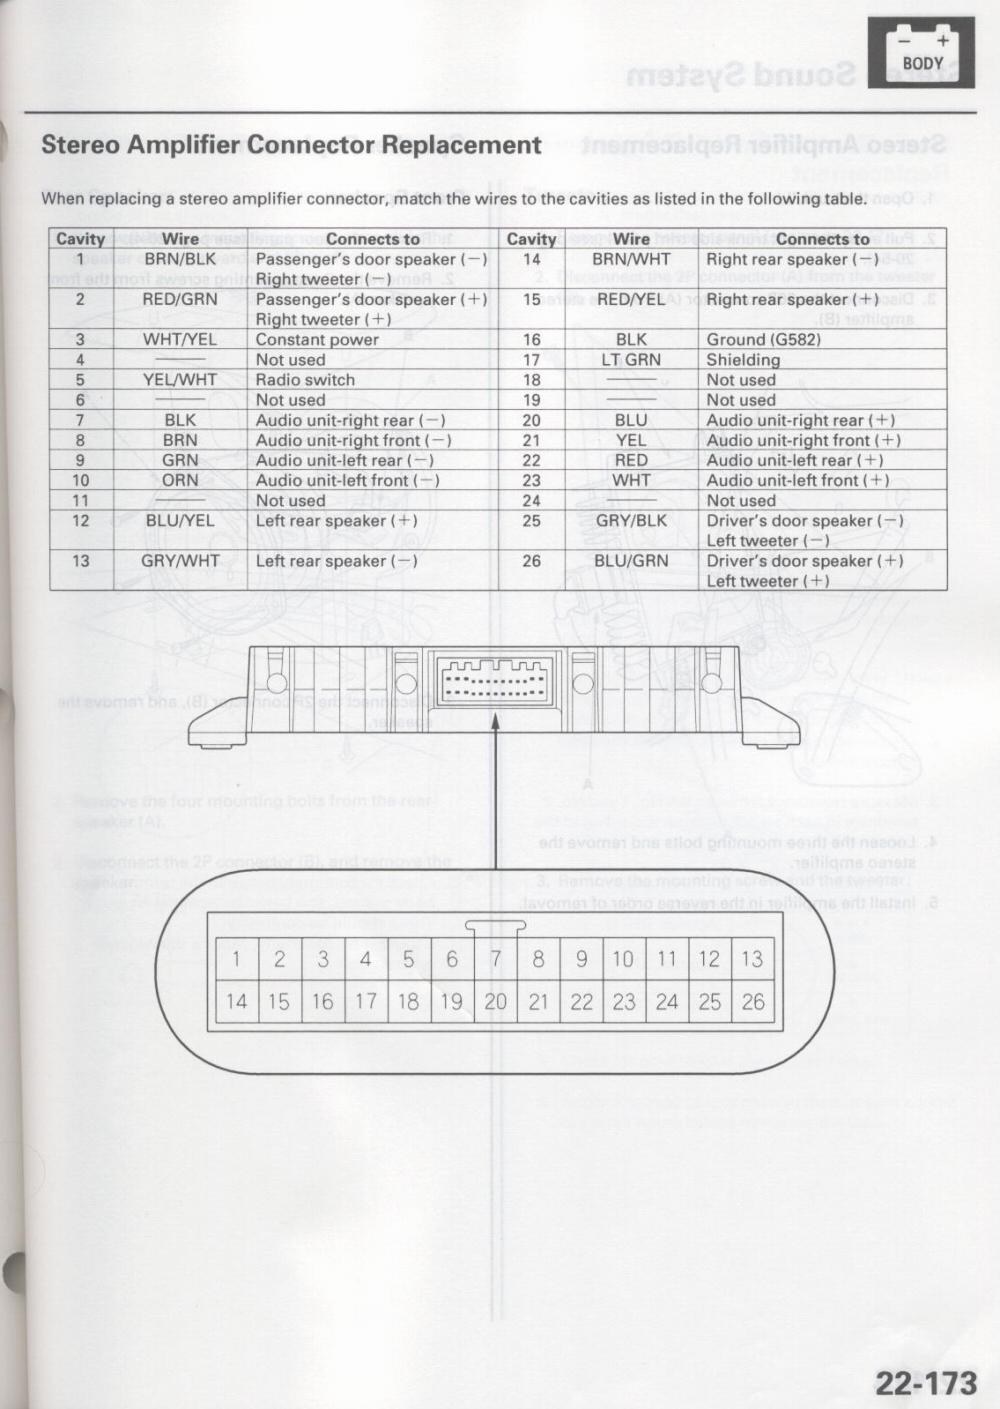 2005 nissan pathfinder radio wiring diagram briggs and stratton ohv engine parts car stereo audio autoradio connector wire installation schematic schema ...